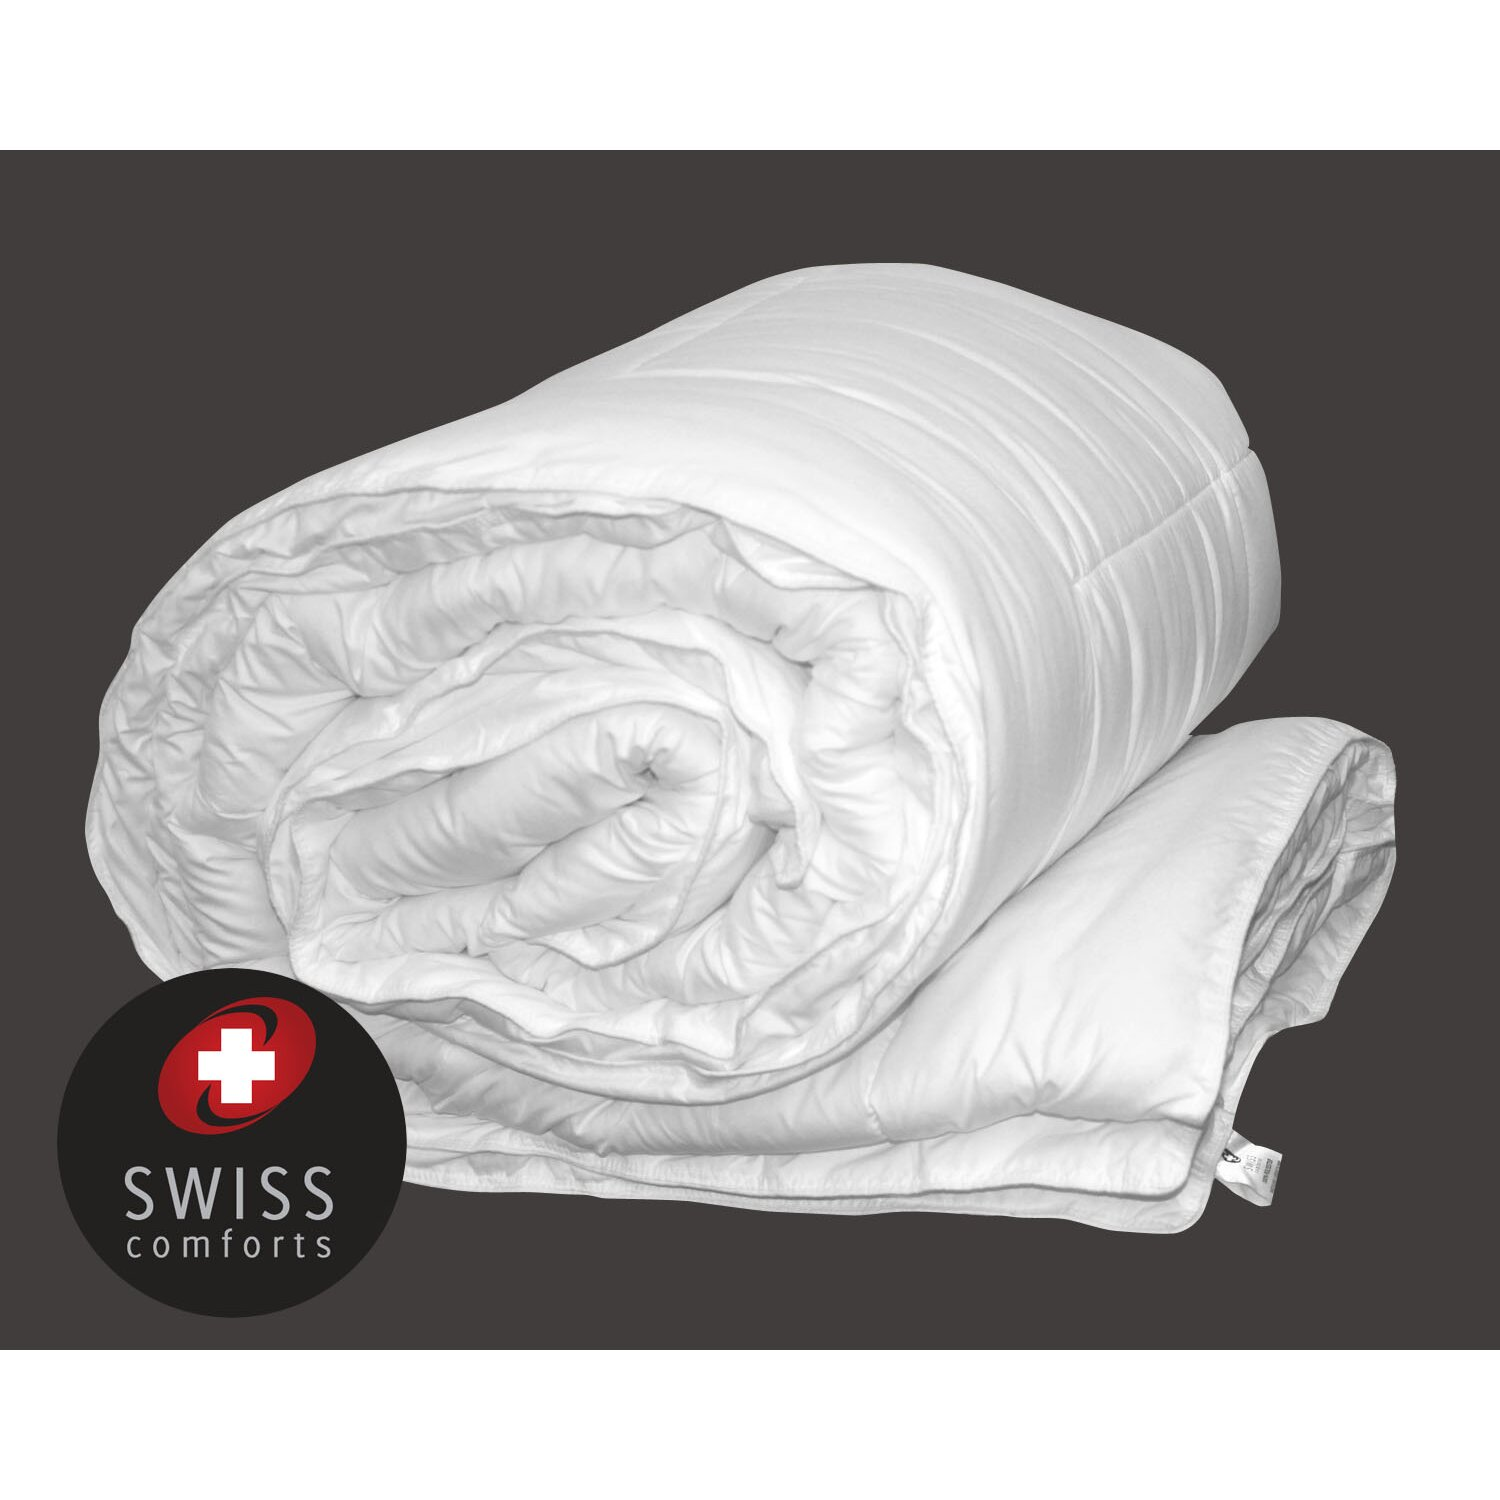 Swiss Comforts Down Alternative Duvet Insert Amp Reviews